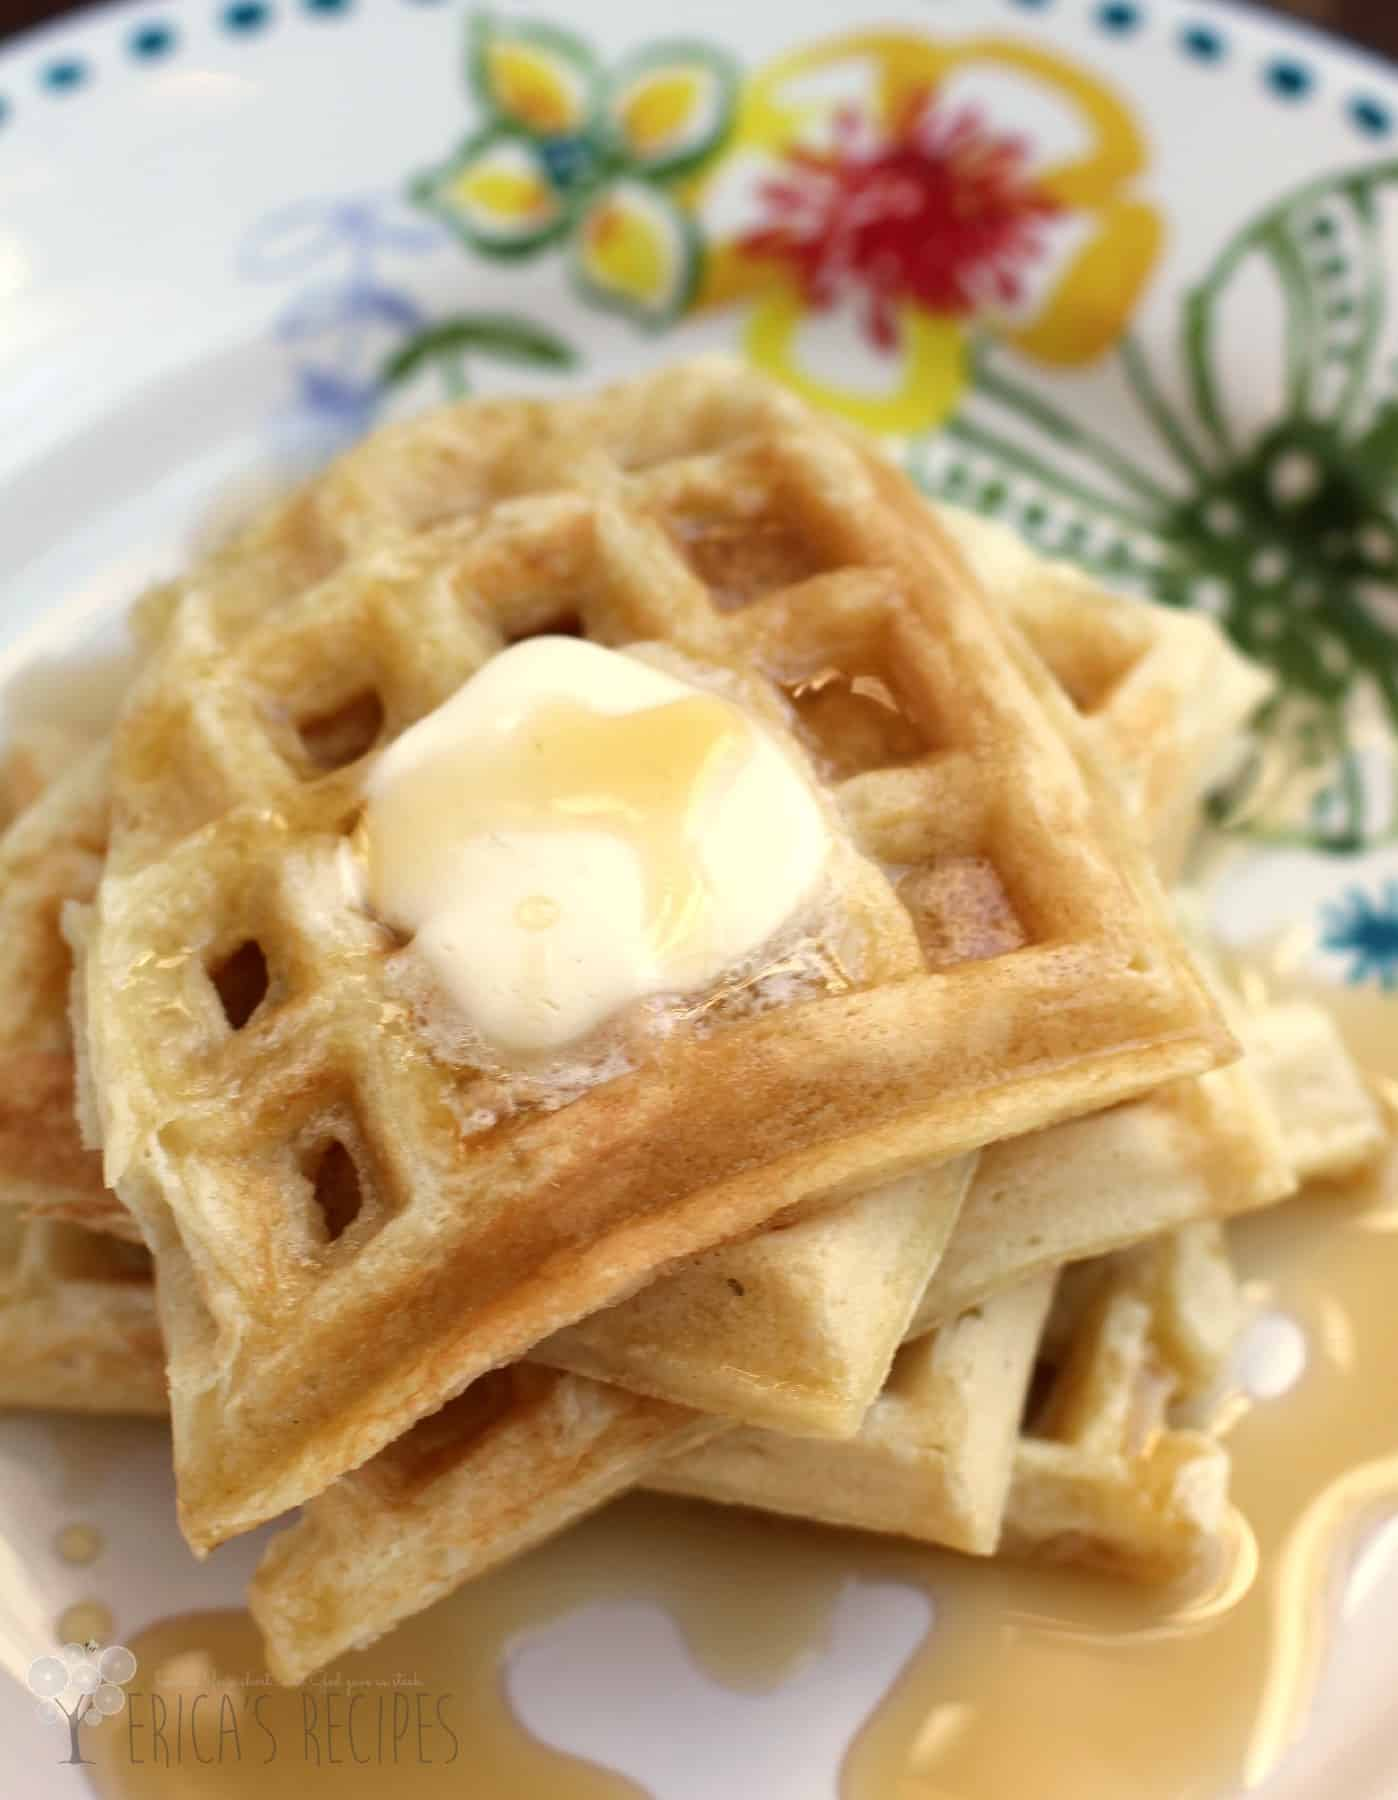 I love these waffles!!! They are my new favorite breakfast food. I went by your recipe but used Bob's Red Mill Whole Wheat Pastry Flour and used the whole egg on the 3rd one added to the batter.